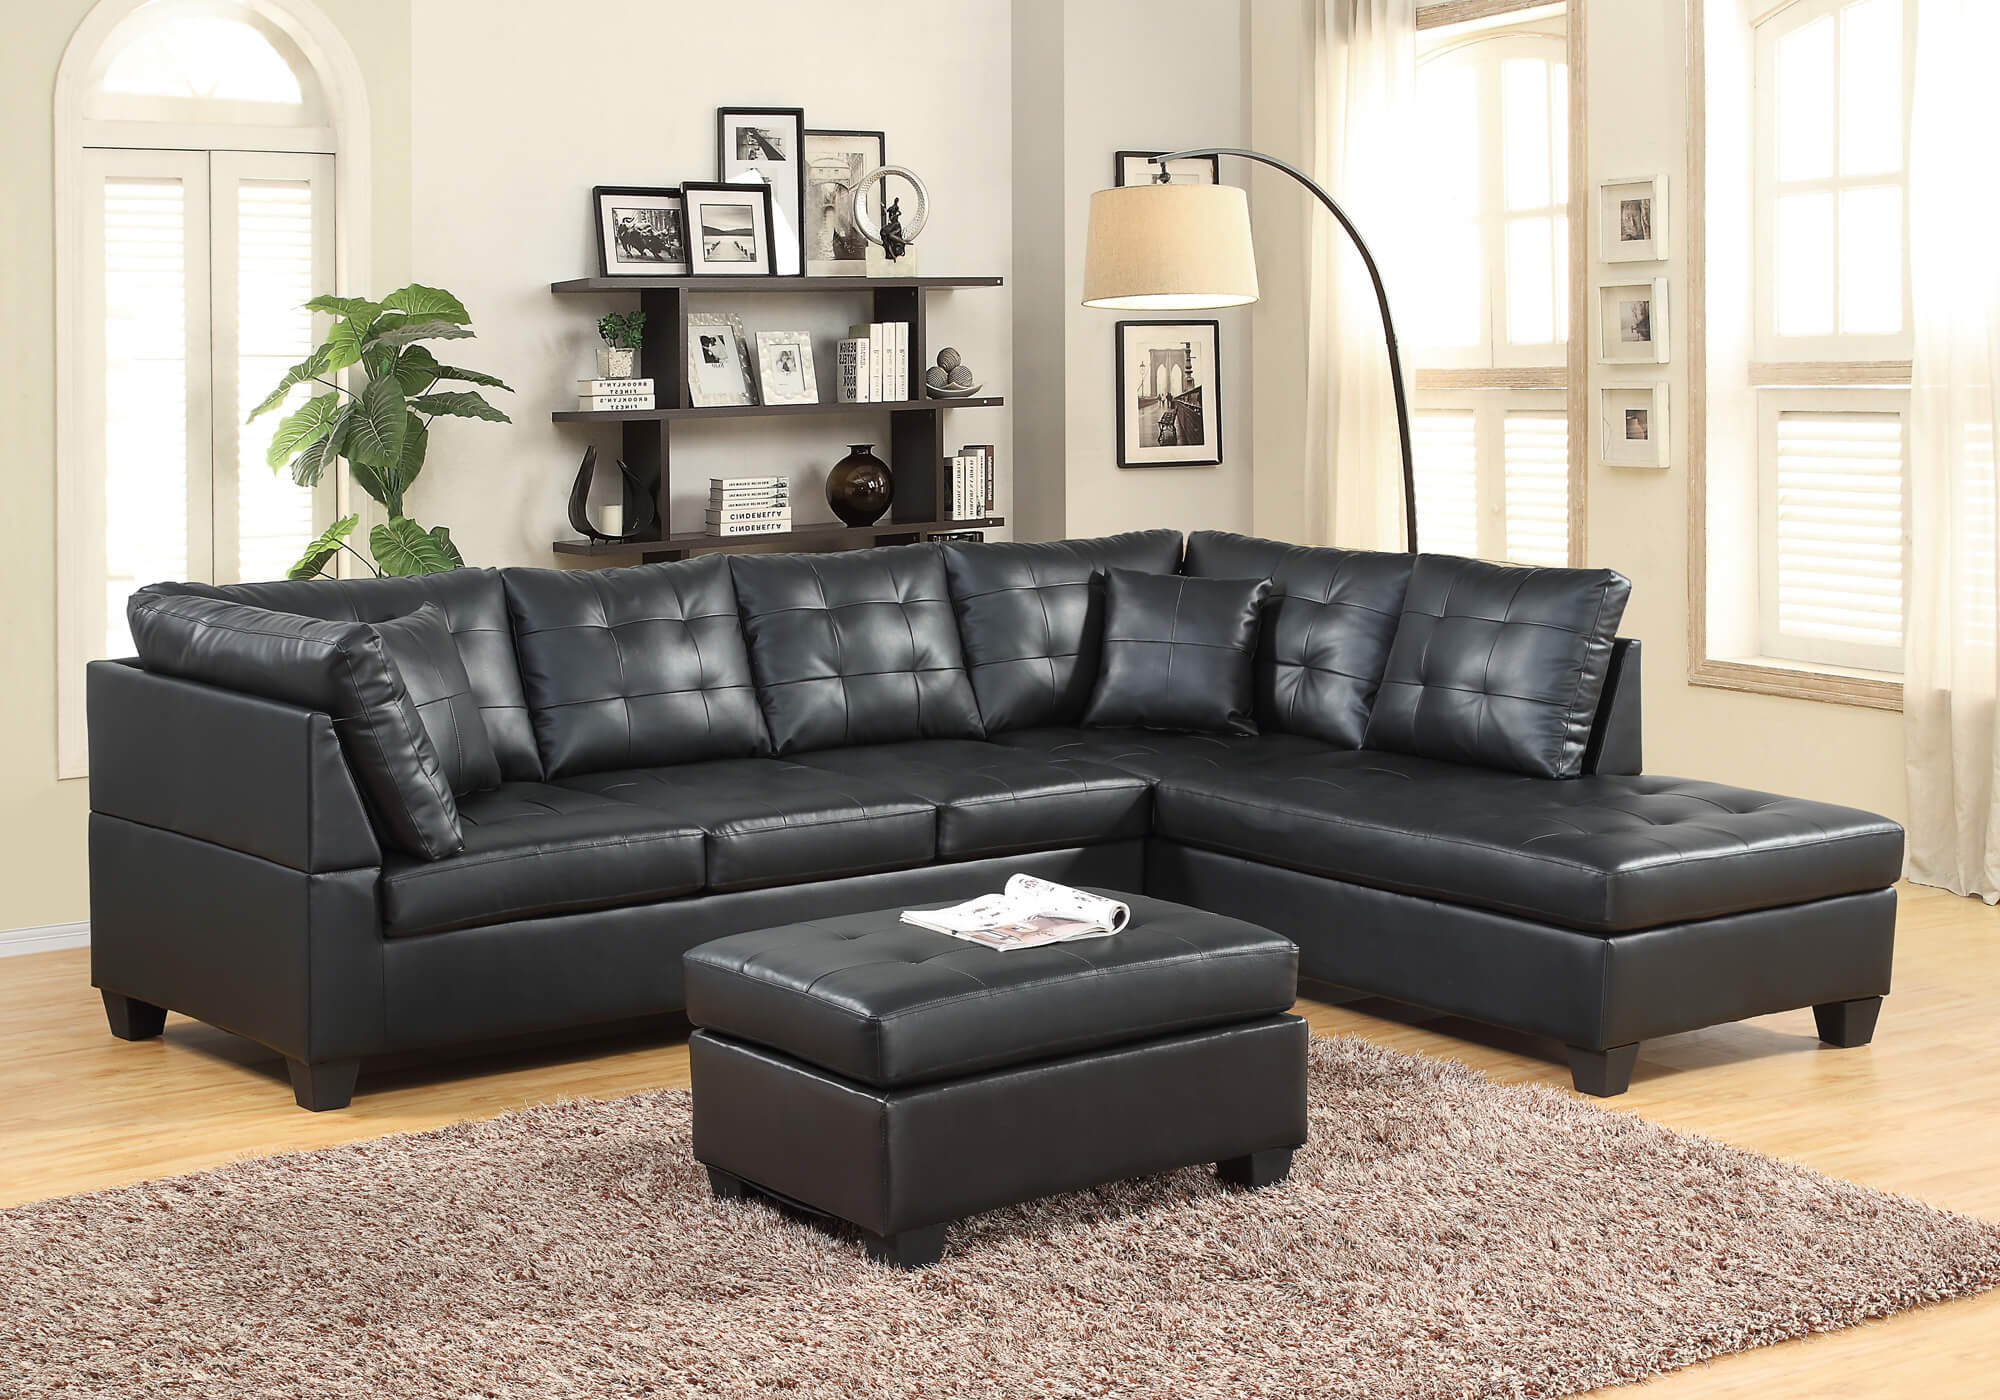 Black Leather Like Sectiona Sectional Sofa Sets